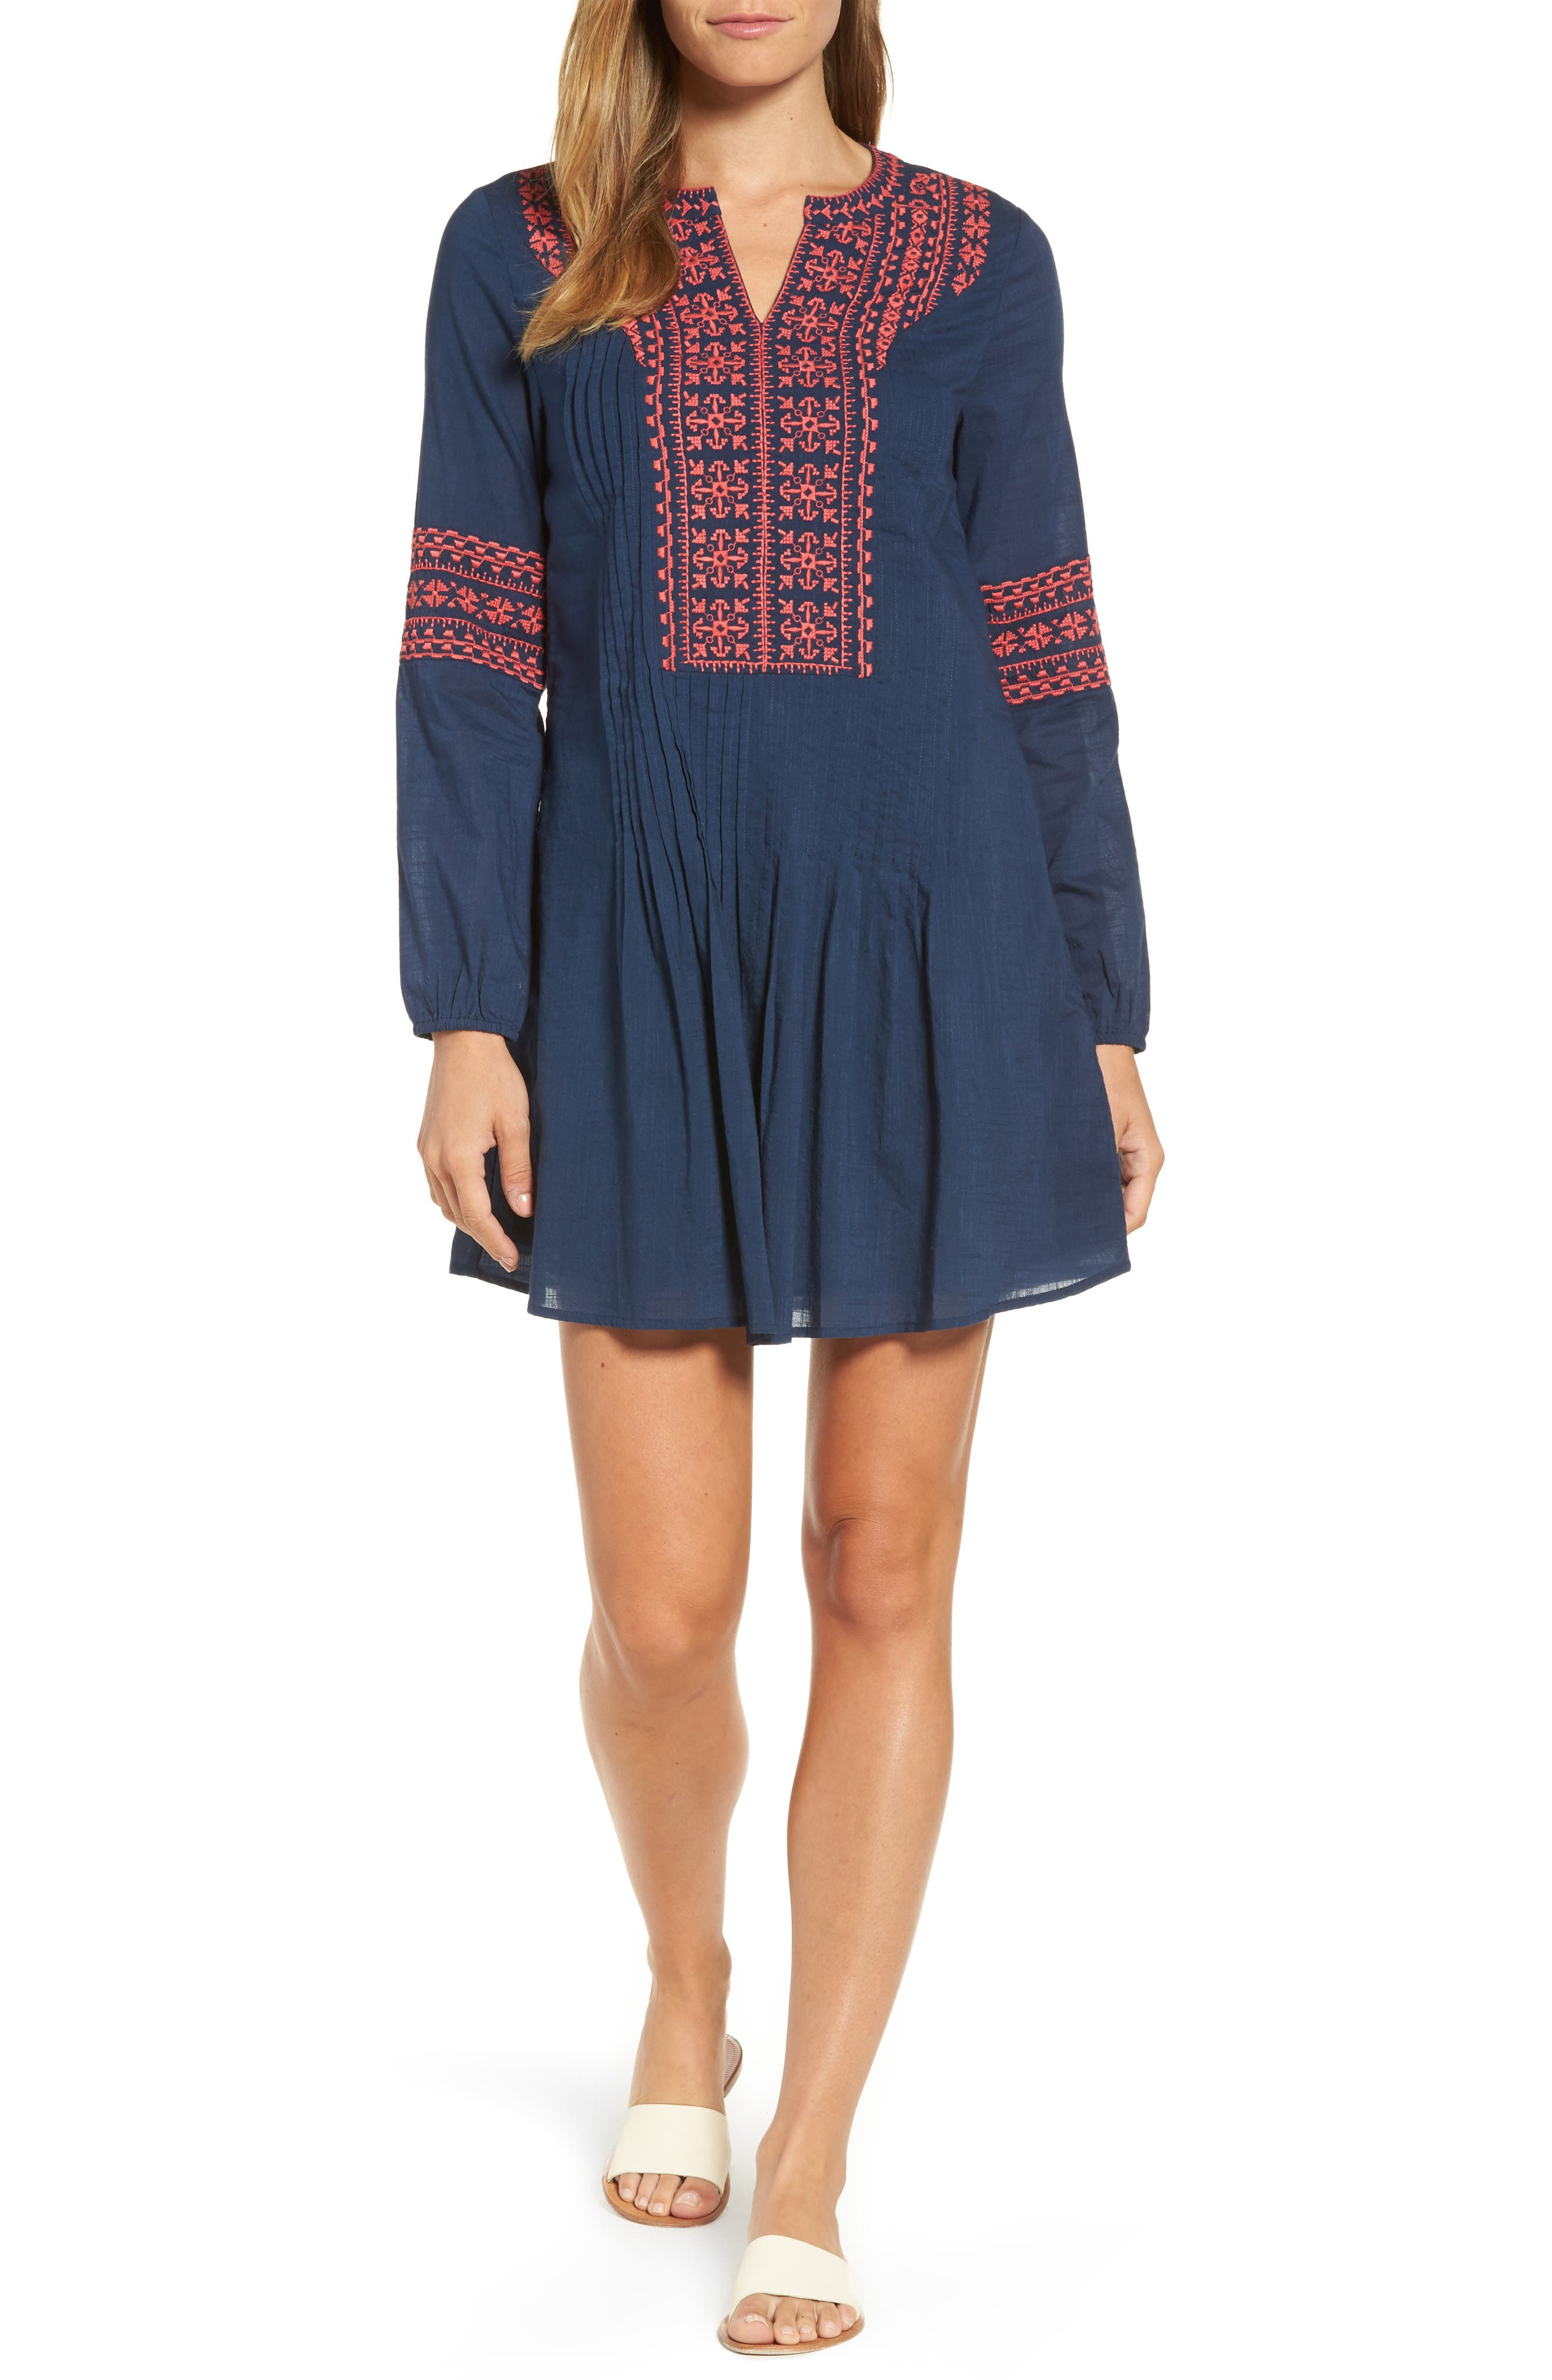 vineyard vines Embroidered Pintuck Dress